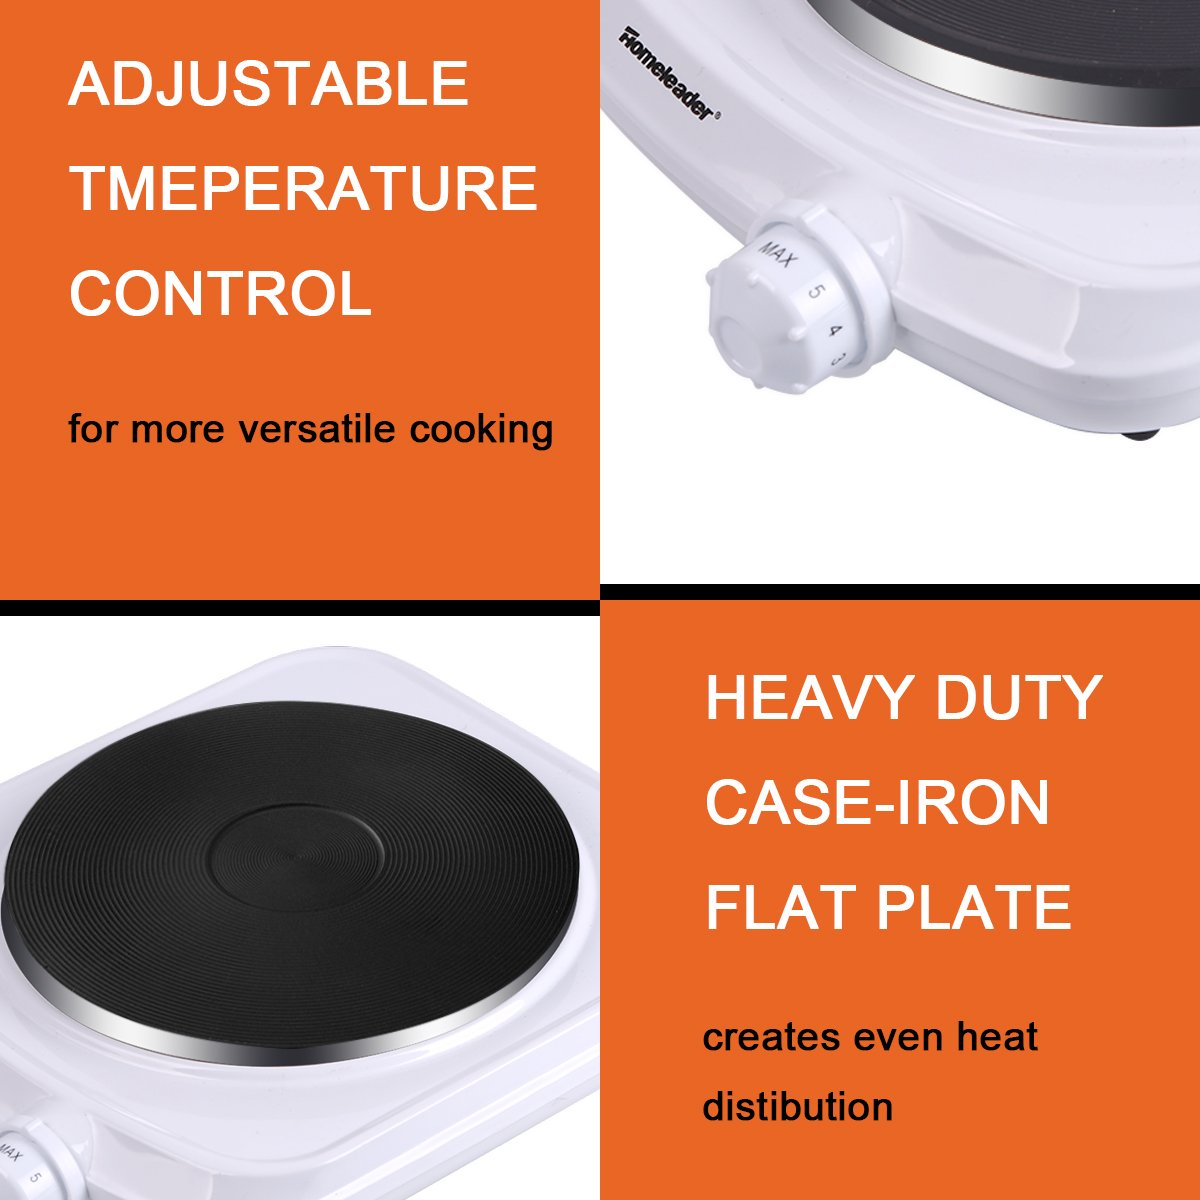 Homeleader Single Hot Plate, Stainless Steel Electric Contertop Burner, 1000W by Homeleader (Image #3)